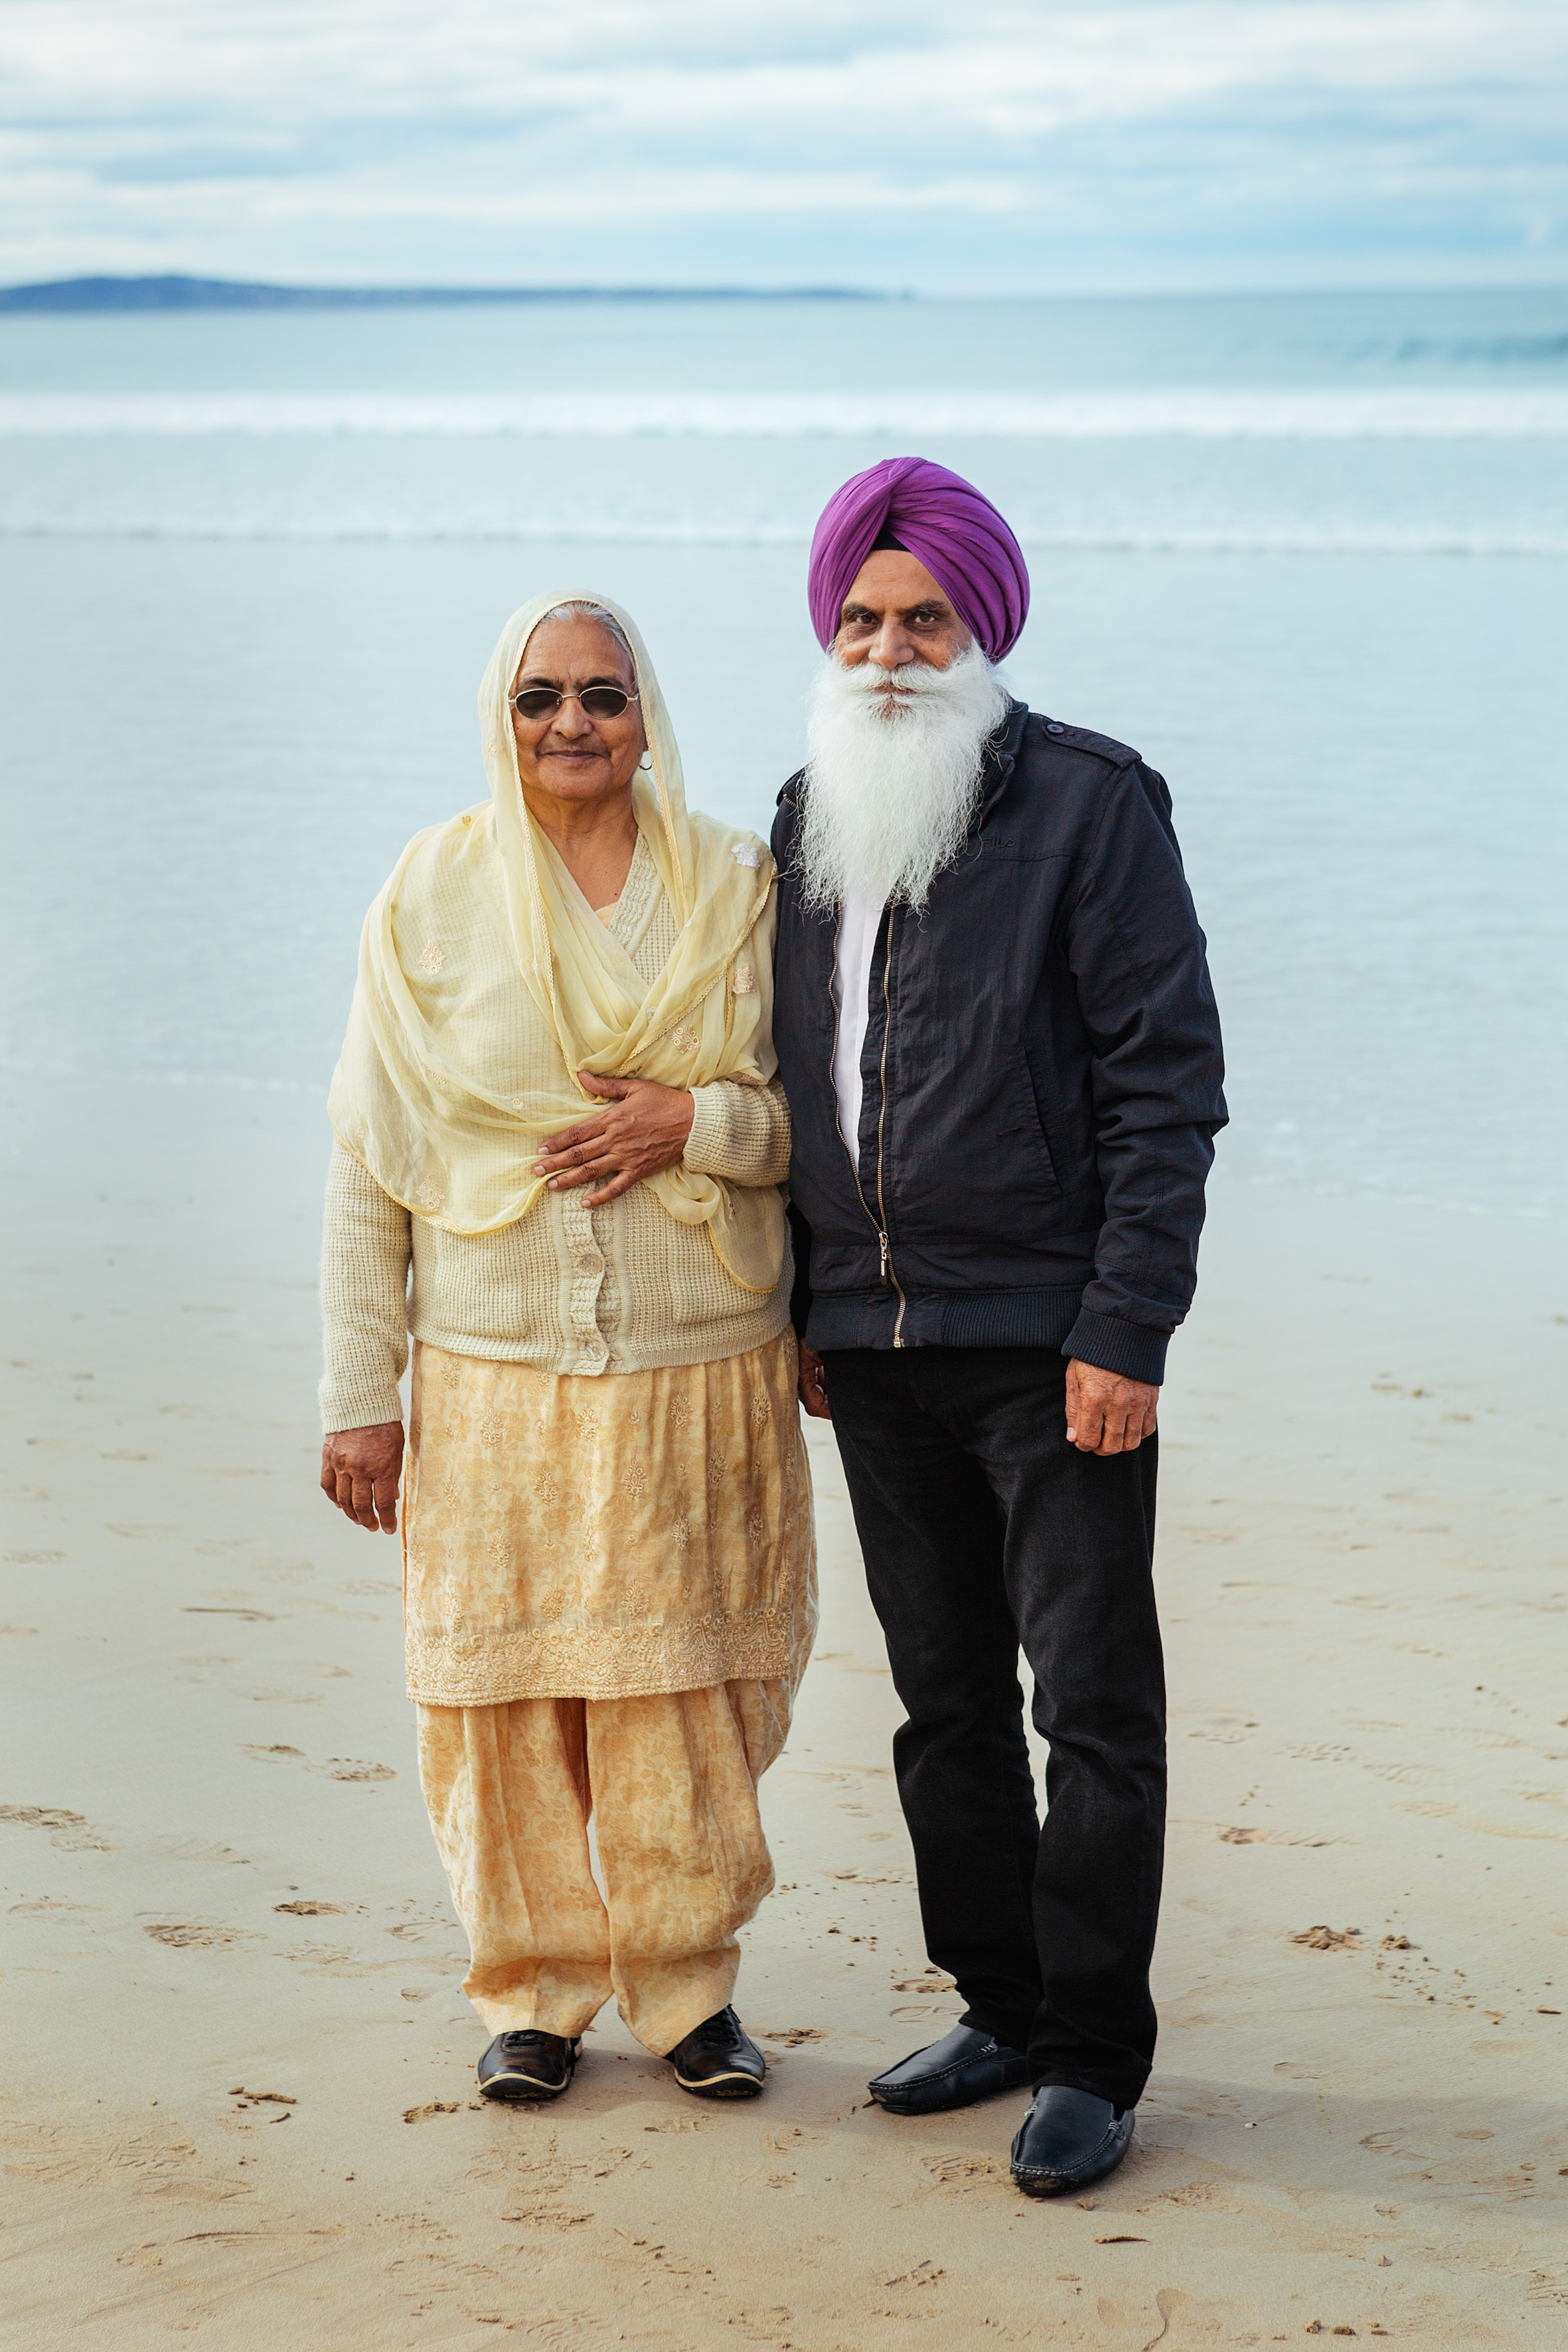 An elderly couple visiting their family from India pose for a photo on the beach.  He explains how worried he was about how they would be received in Australia and how impressed he has been with the welcoming and warmth towards them.